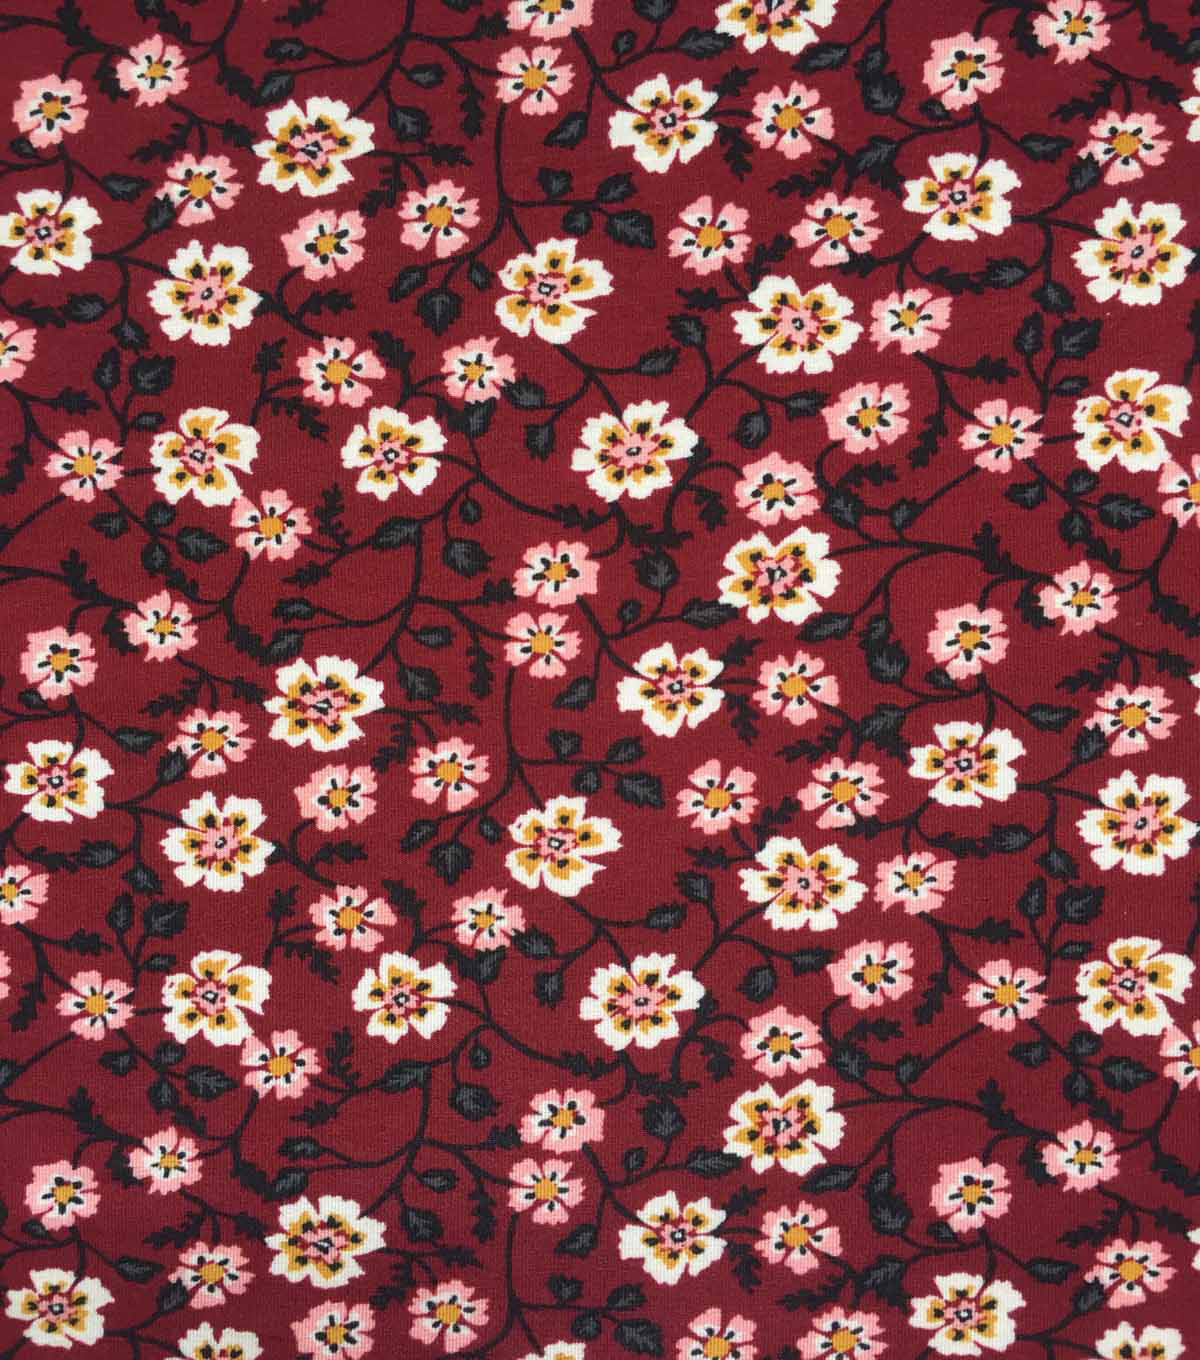 Apparel Knit Fabric-Floral on Burgundy